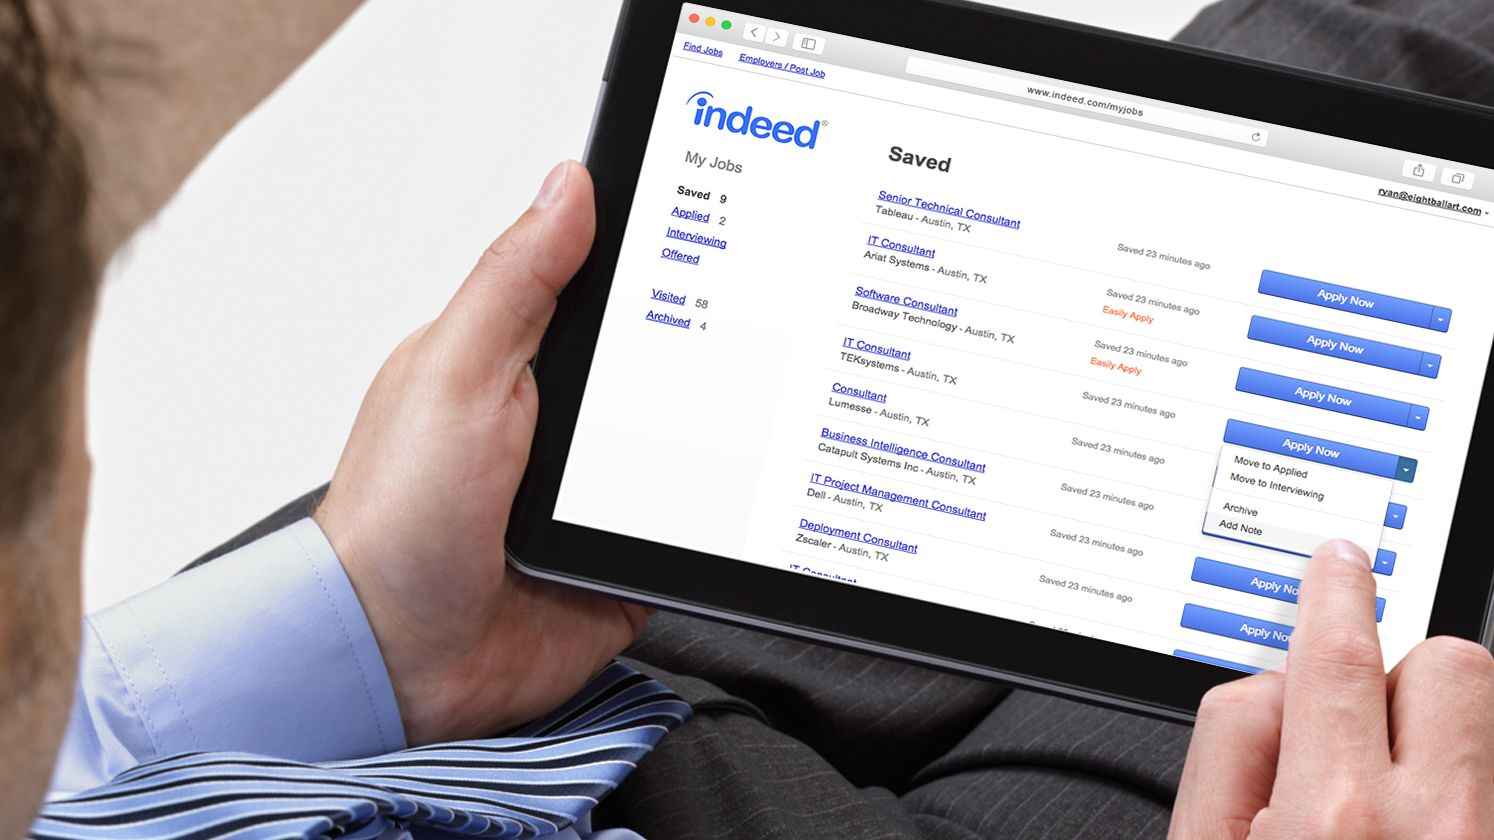 Stay on top of your career with advanced job search